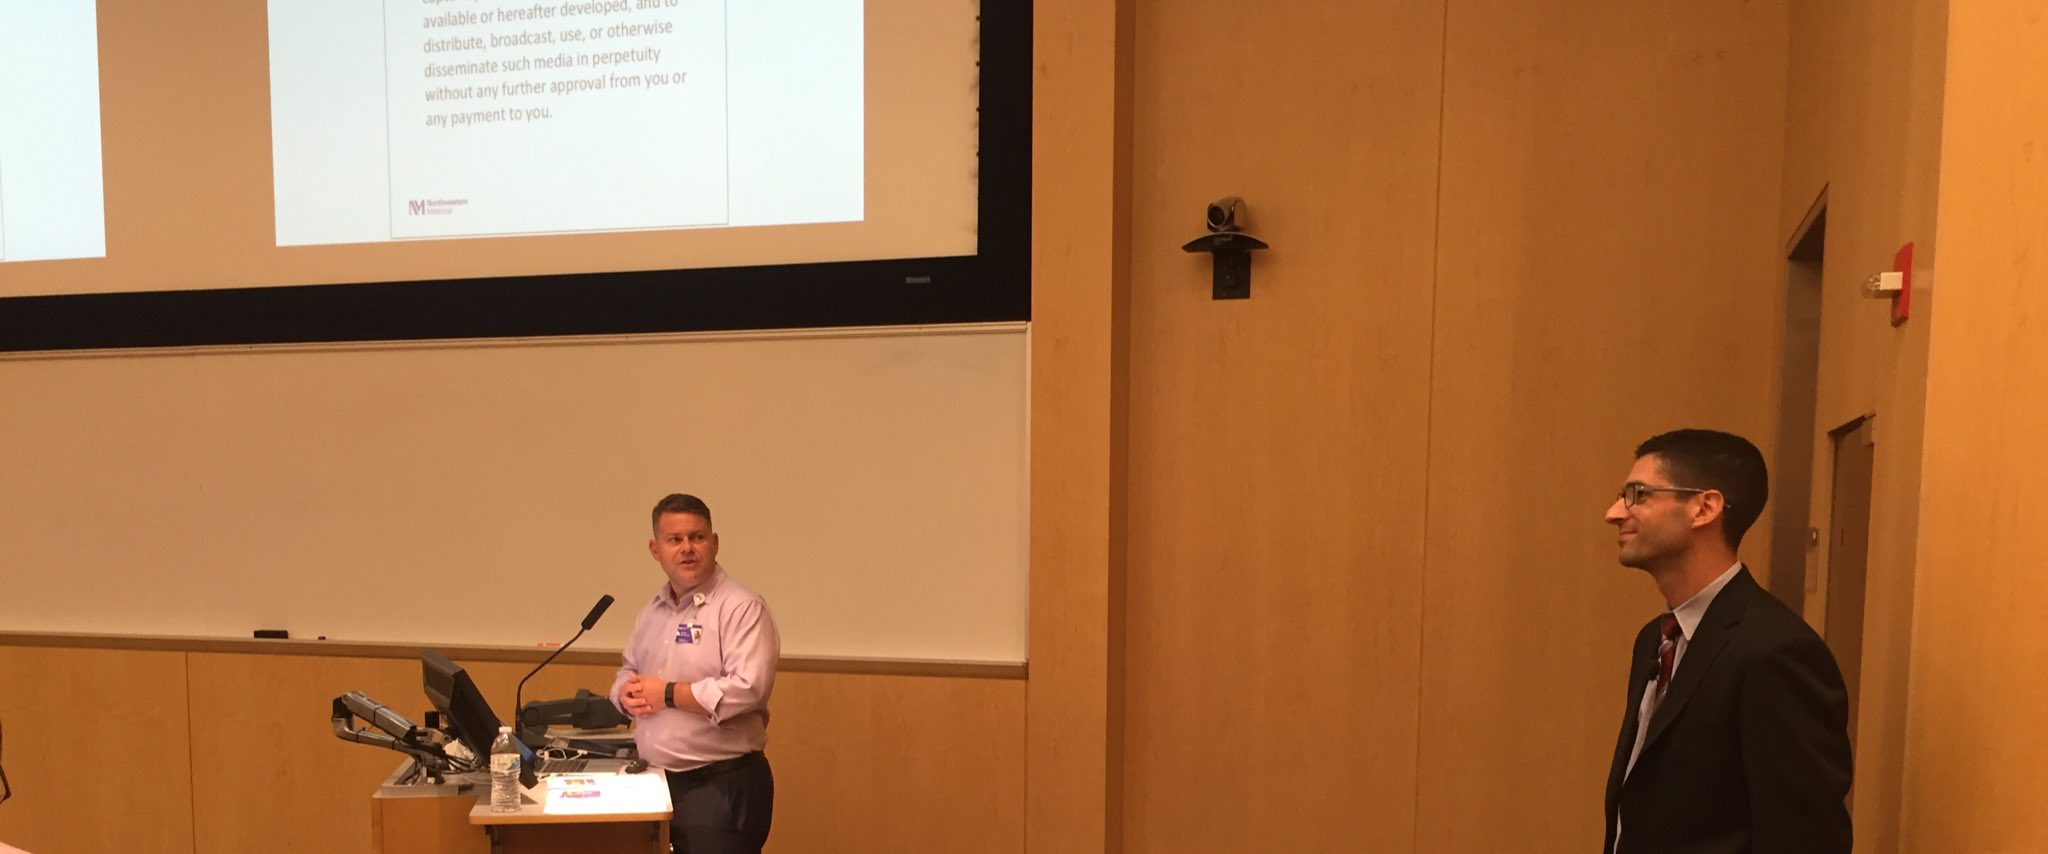 .@MikeGisondi introducing @dhsalz13 for his @NU_FAME lecture #meded https://t.co/AVqXpYkpwJ